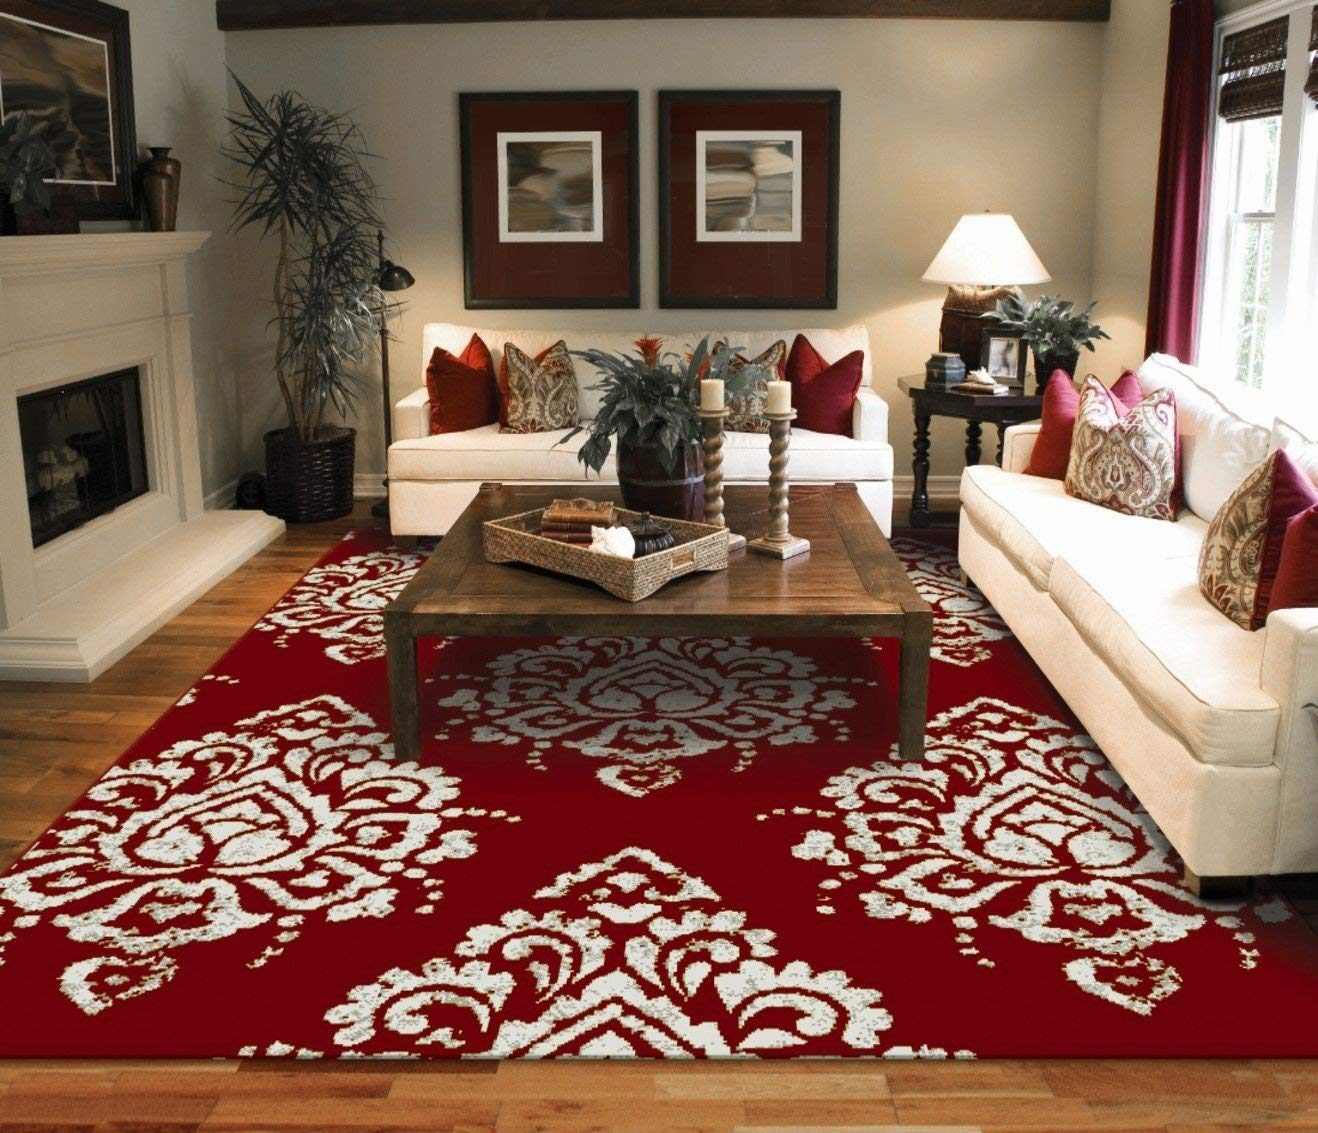 Use of red rugs